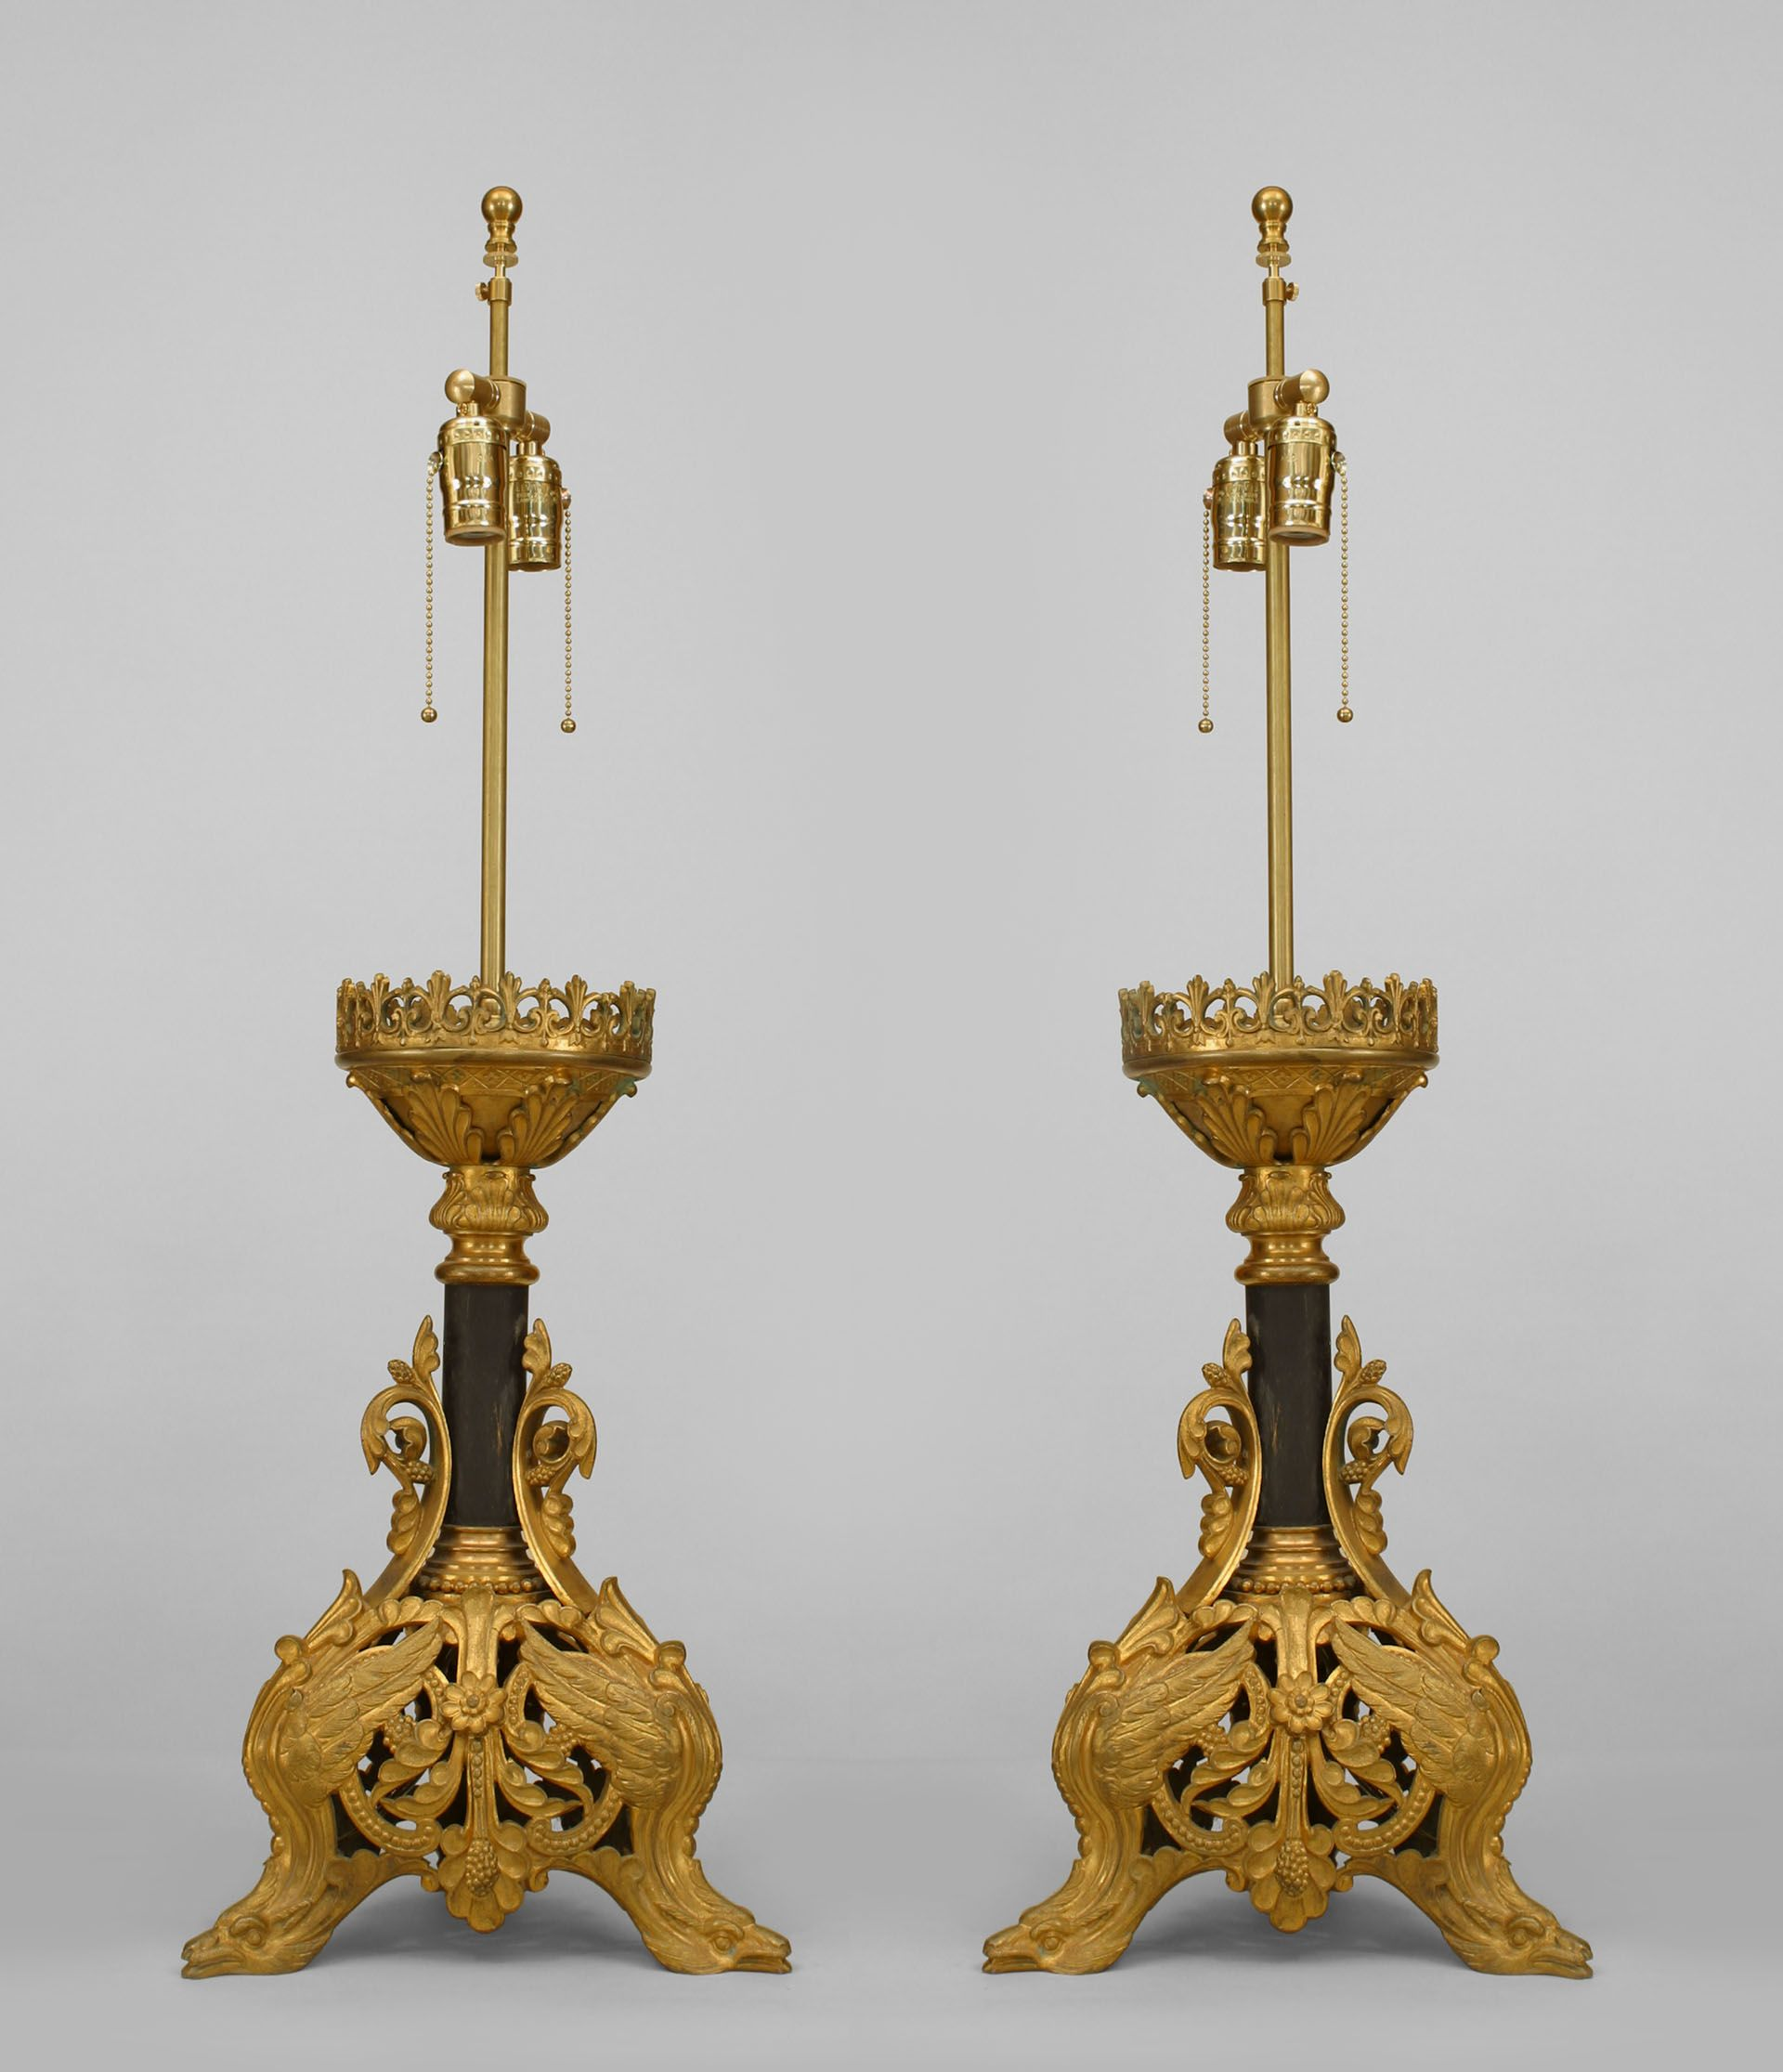 Pair of Italian Renaissance style (19/20th Cent) gilt bronze filigree base altar sticks mounted as lamps with 3 winged bird head legs and an ebonized center post